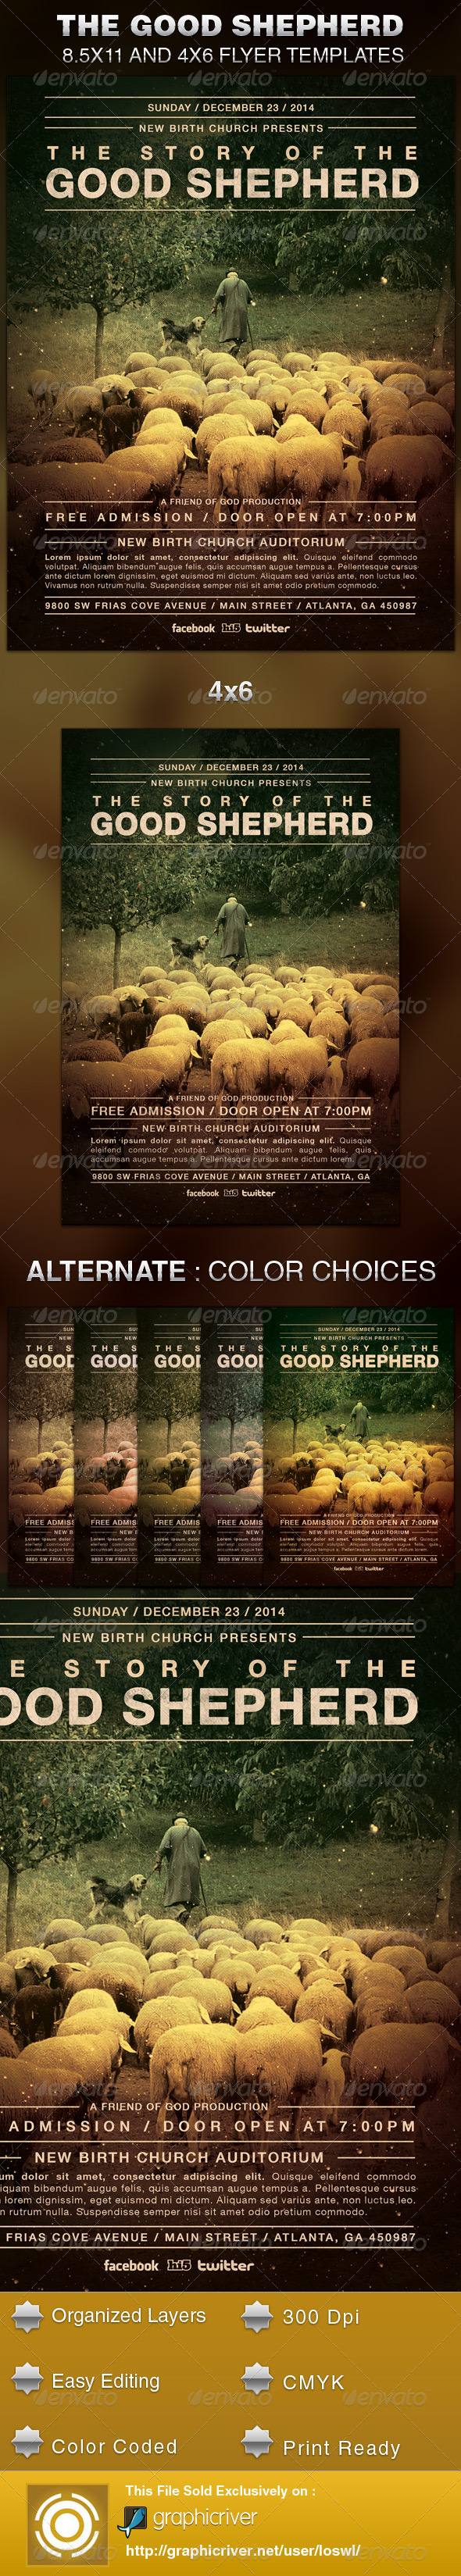 The Good Shepherd Church Flyer Template - Church Flyers